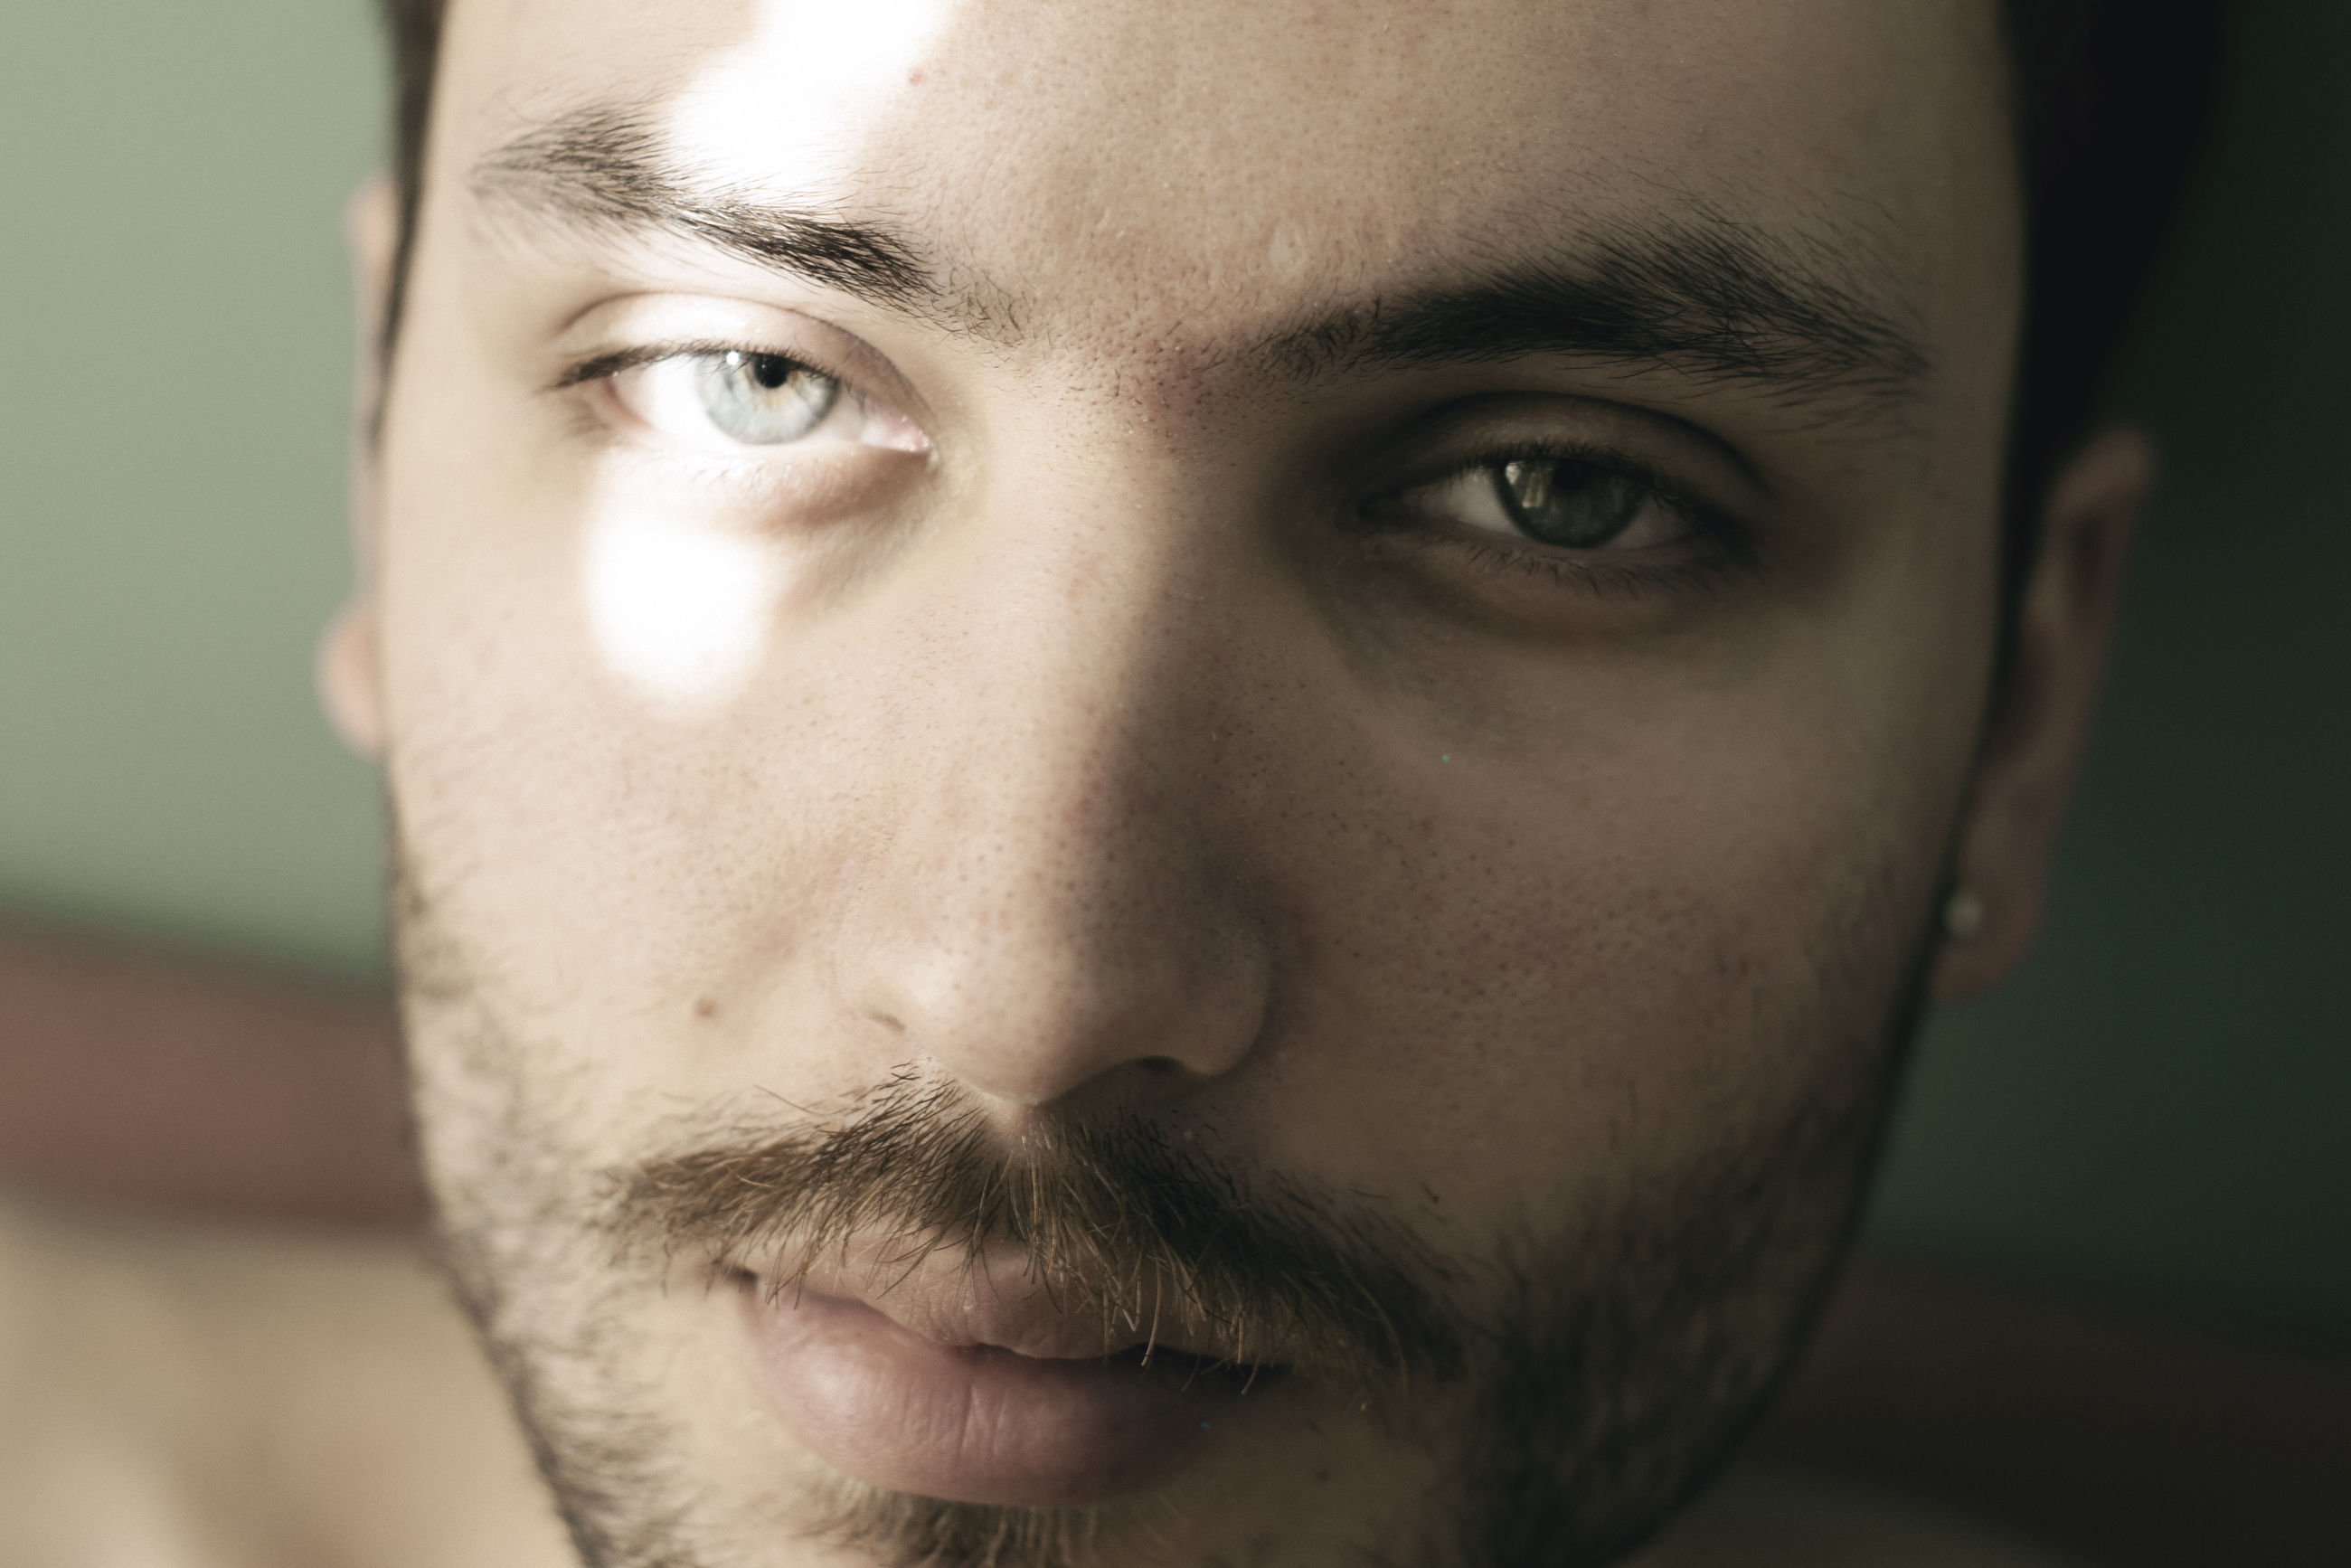 portrait, looking at camera, headshot, close-up, one person, young men, real people, men, young adult, beard, body part, human face, front view, human body part, focus on foreground, males, mid adult, facial hair, contemplation